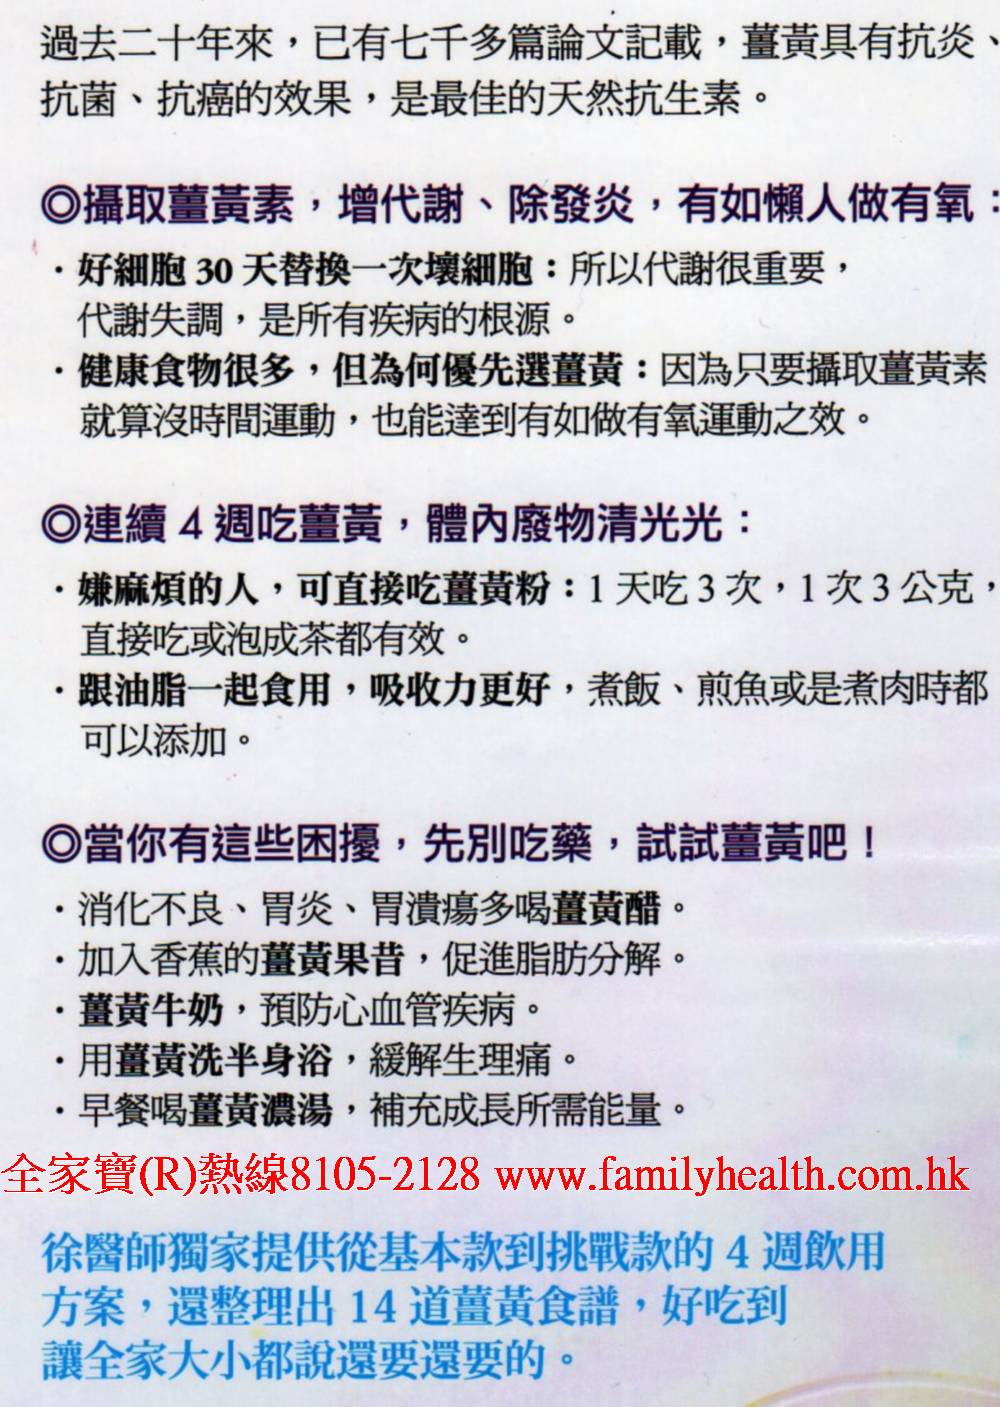 http://www.familyhealth.com.hk/files/full/972_1.jpg